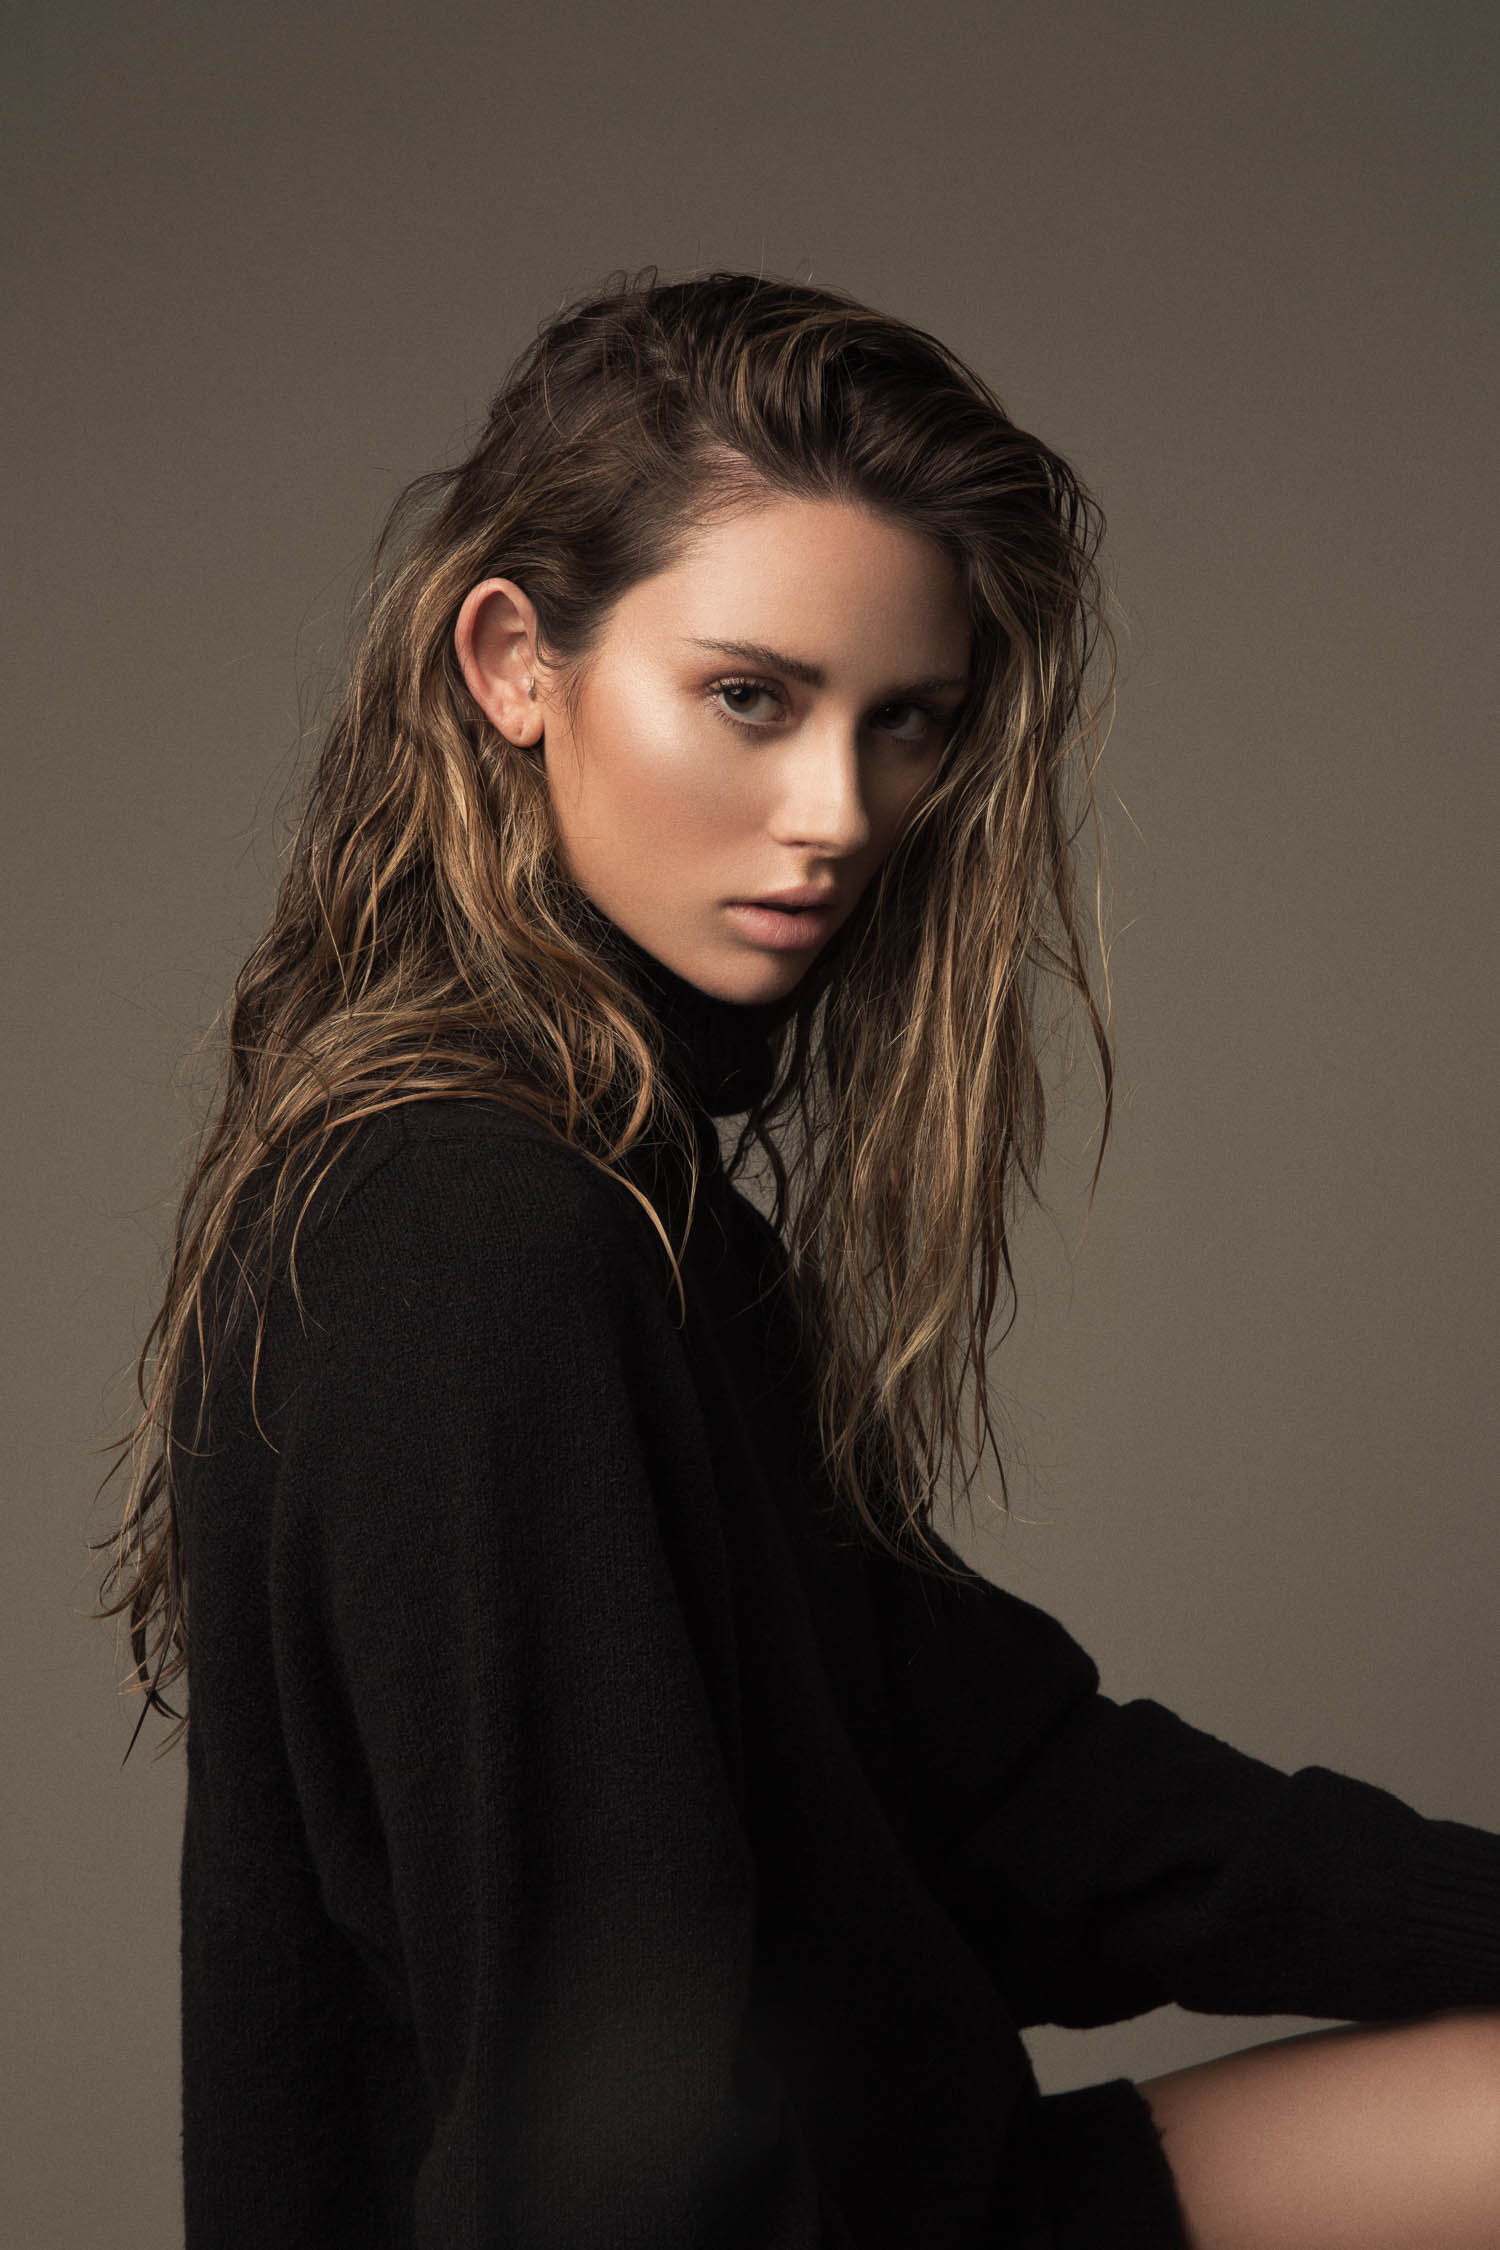 Model with wet hair wearing a black turtleneck